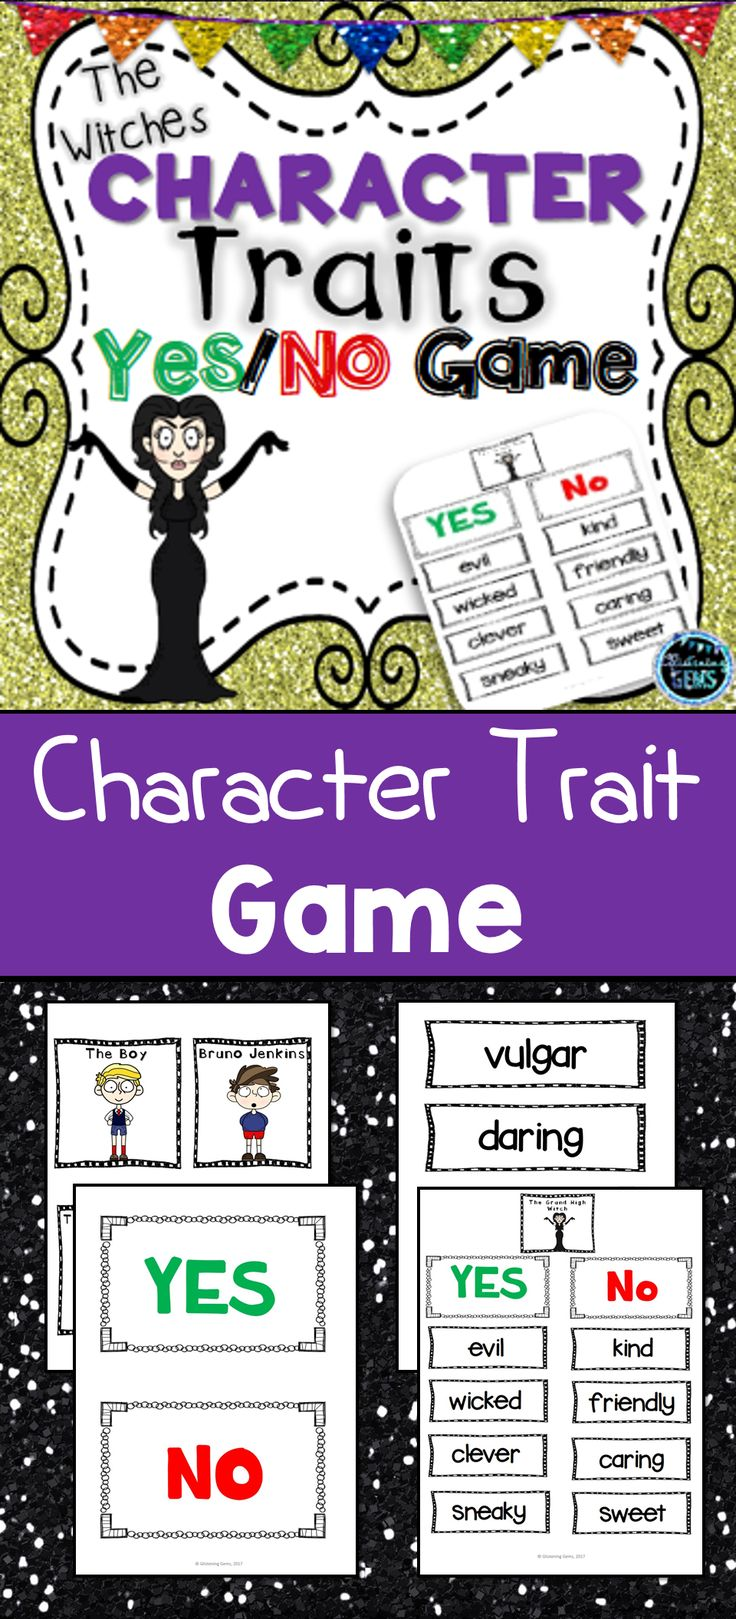 Character Traits Game for the popular novel the Witches by Roald Dahl. Great game, where students make inferences about characters to sort the character traits.